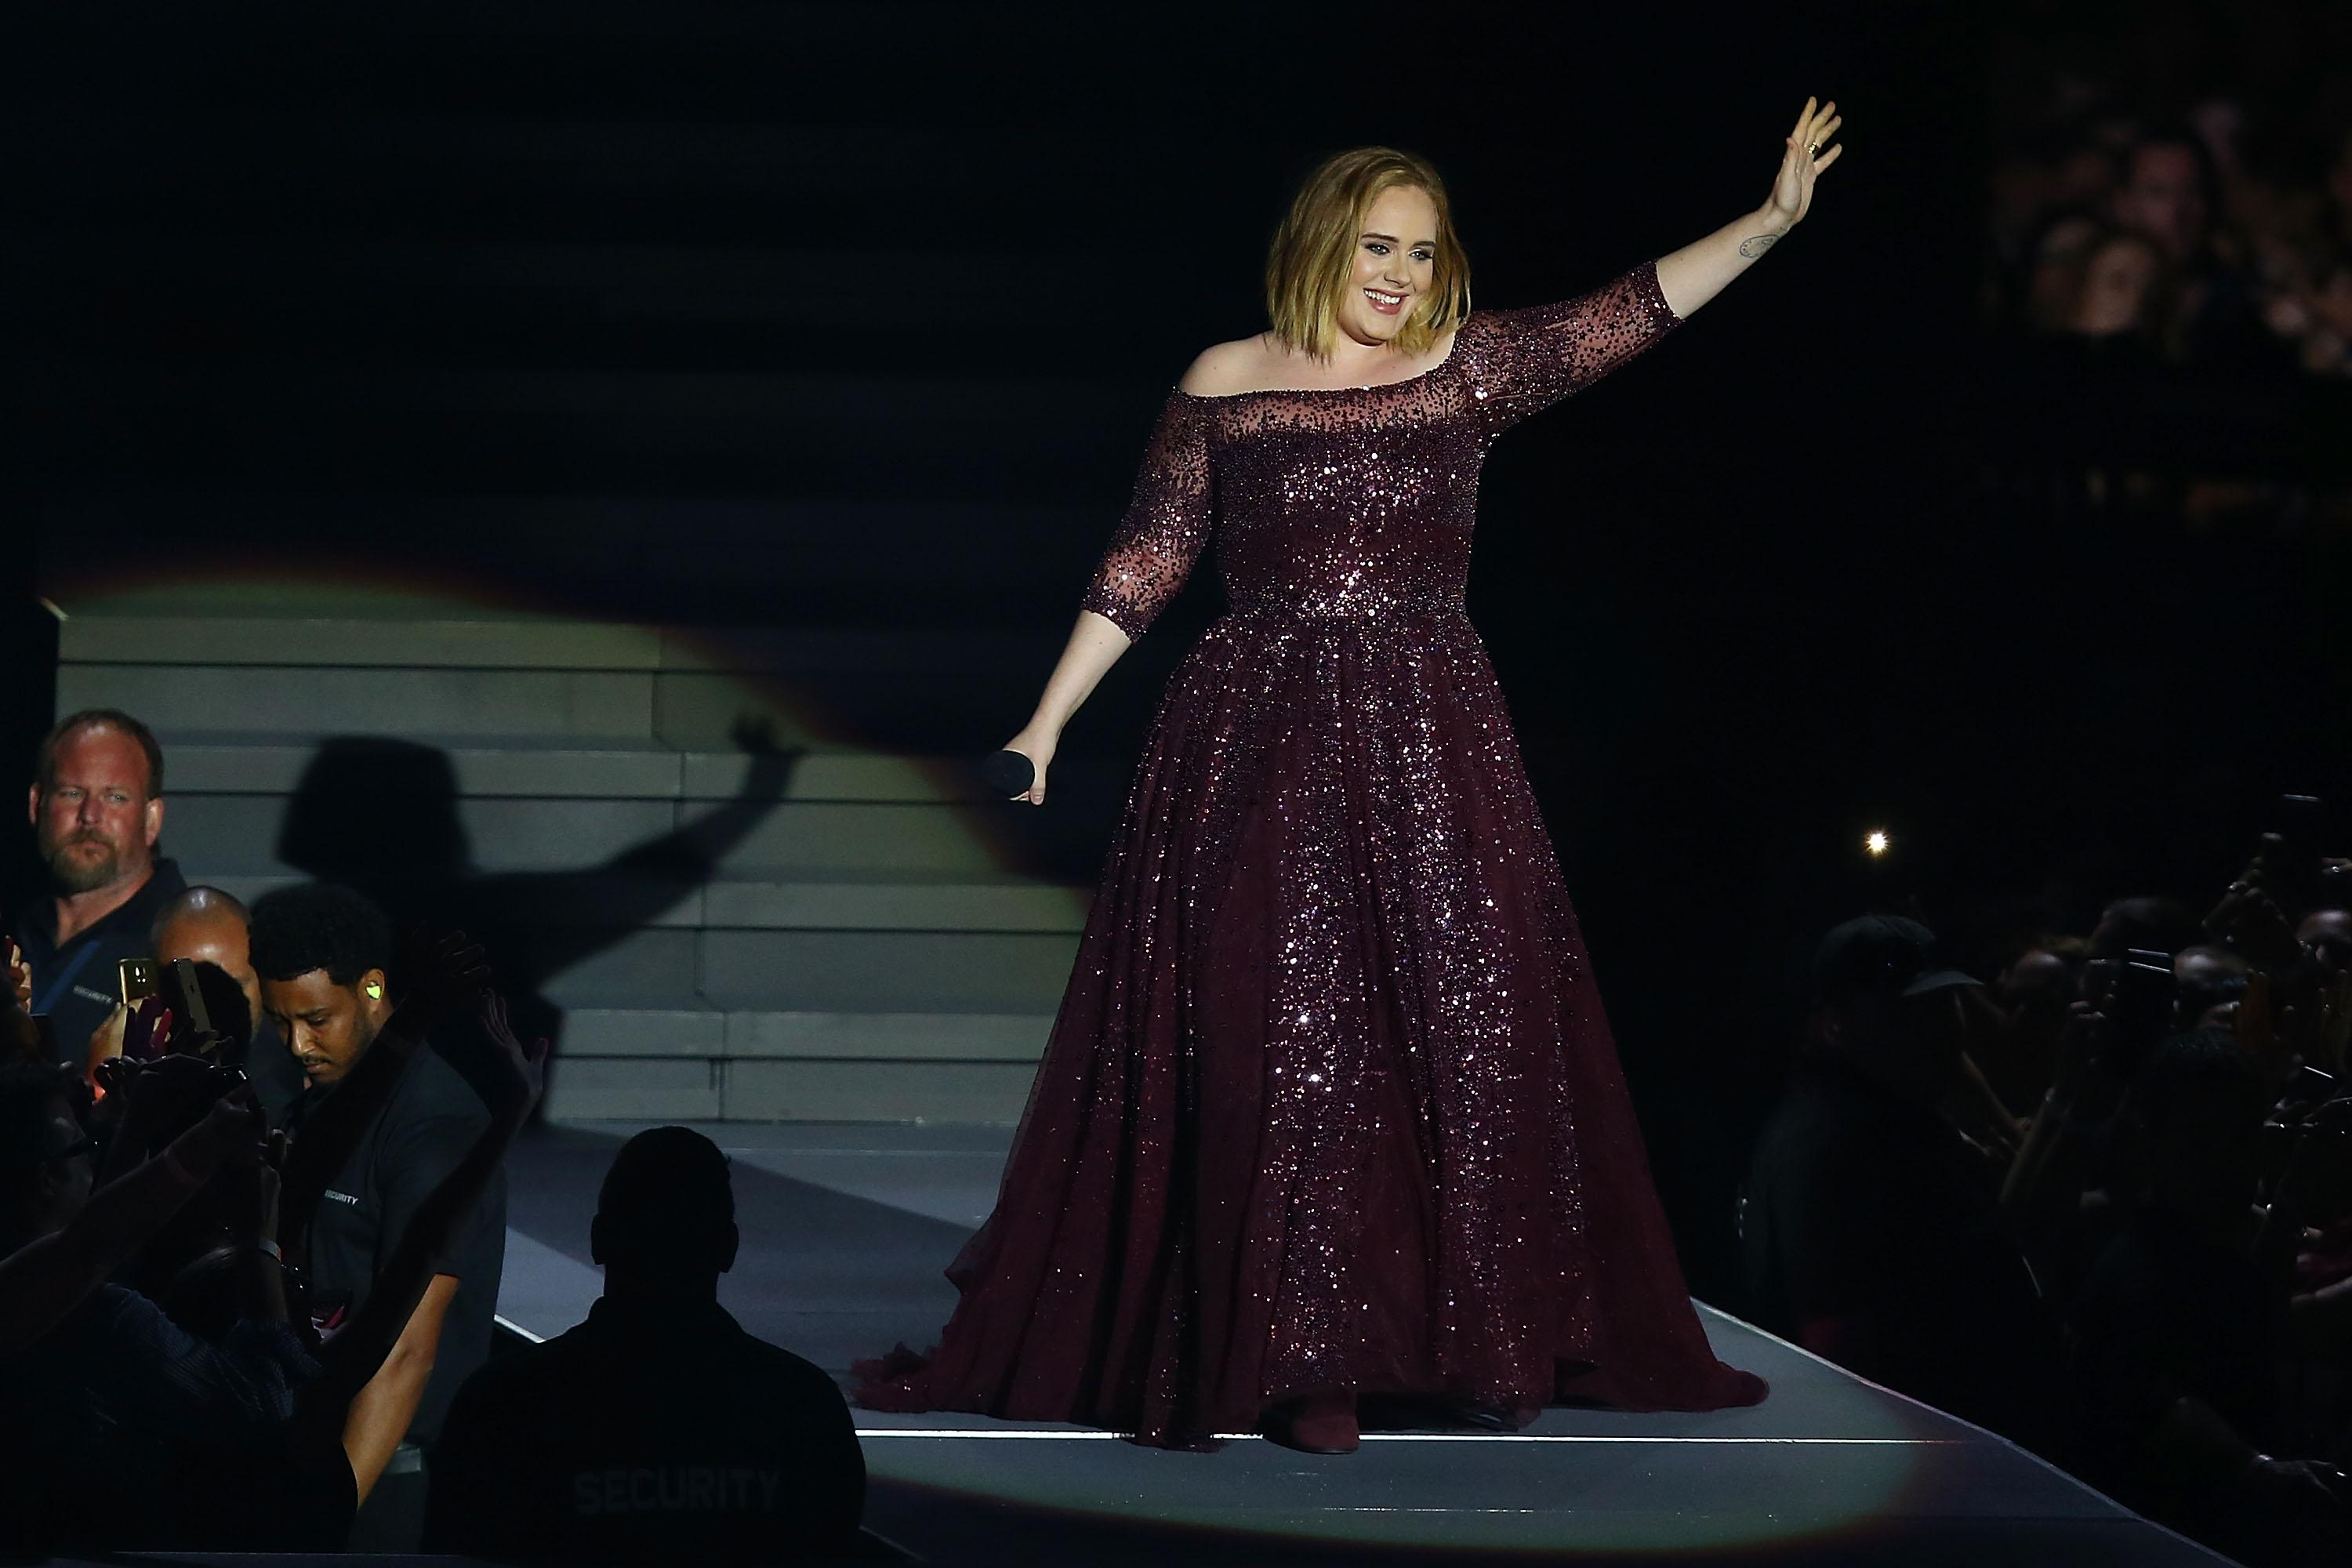 Adele confirms she is married to Simon Konecki